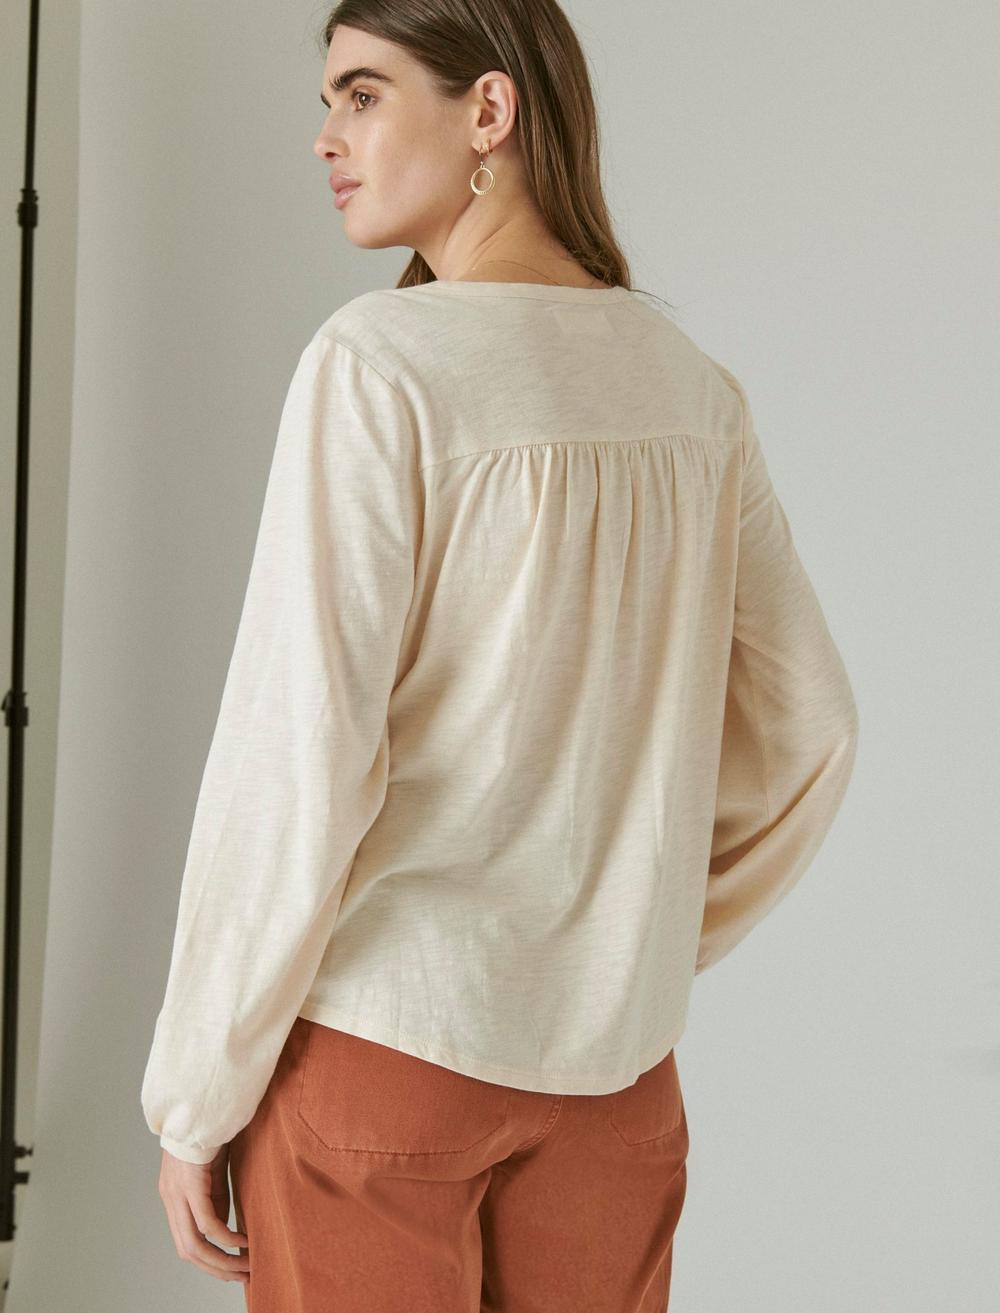 PLEATED V-NECK KNIT TOP, image 5